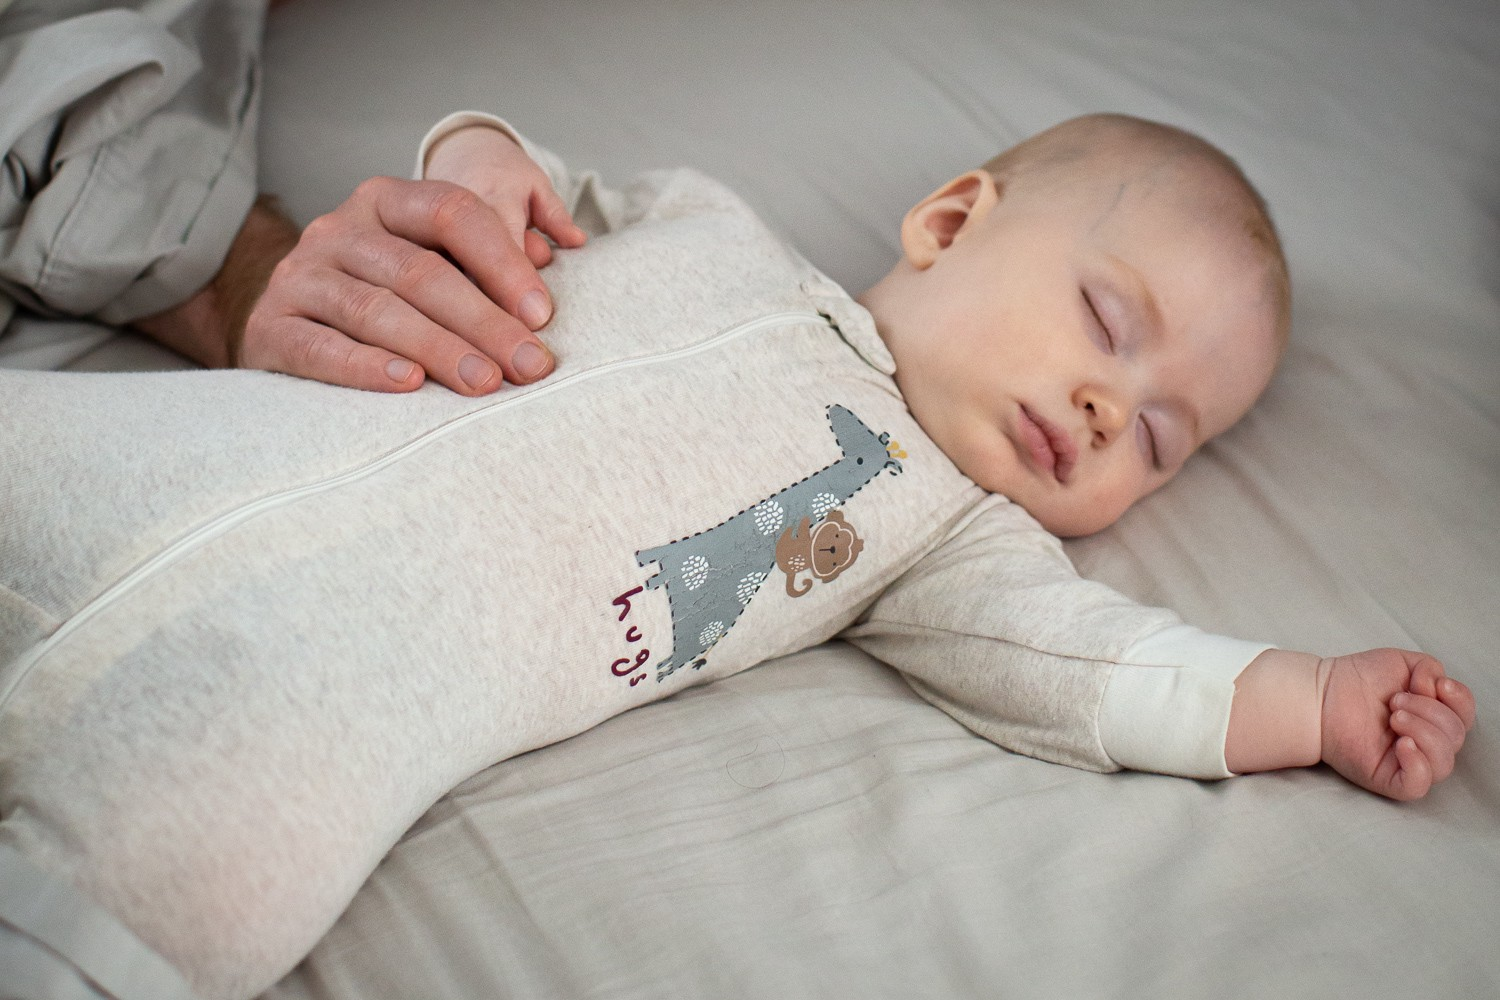 dad holding hands with sleeping baby